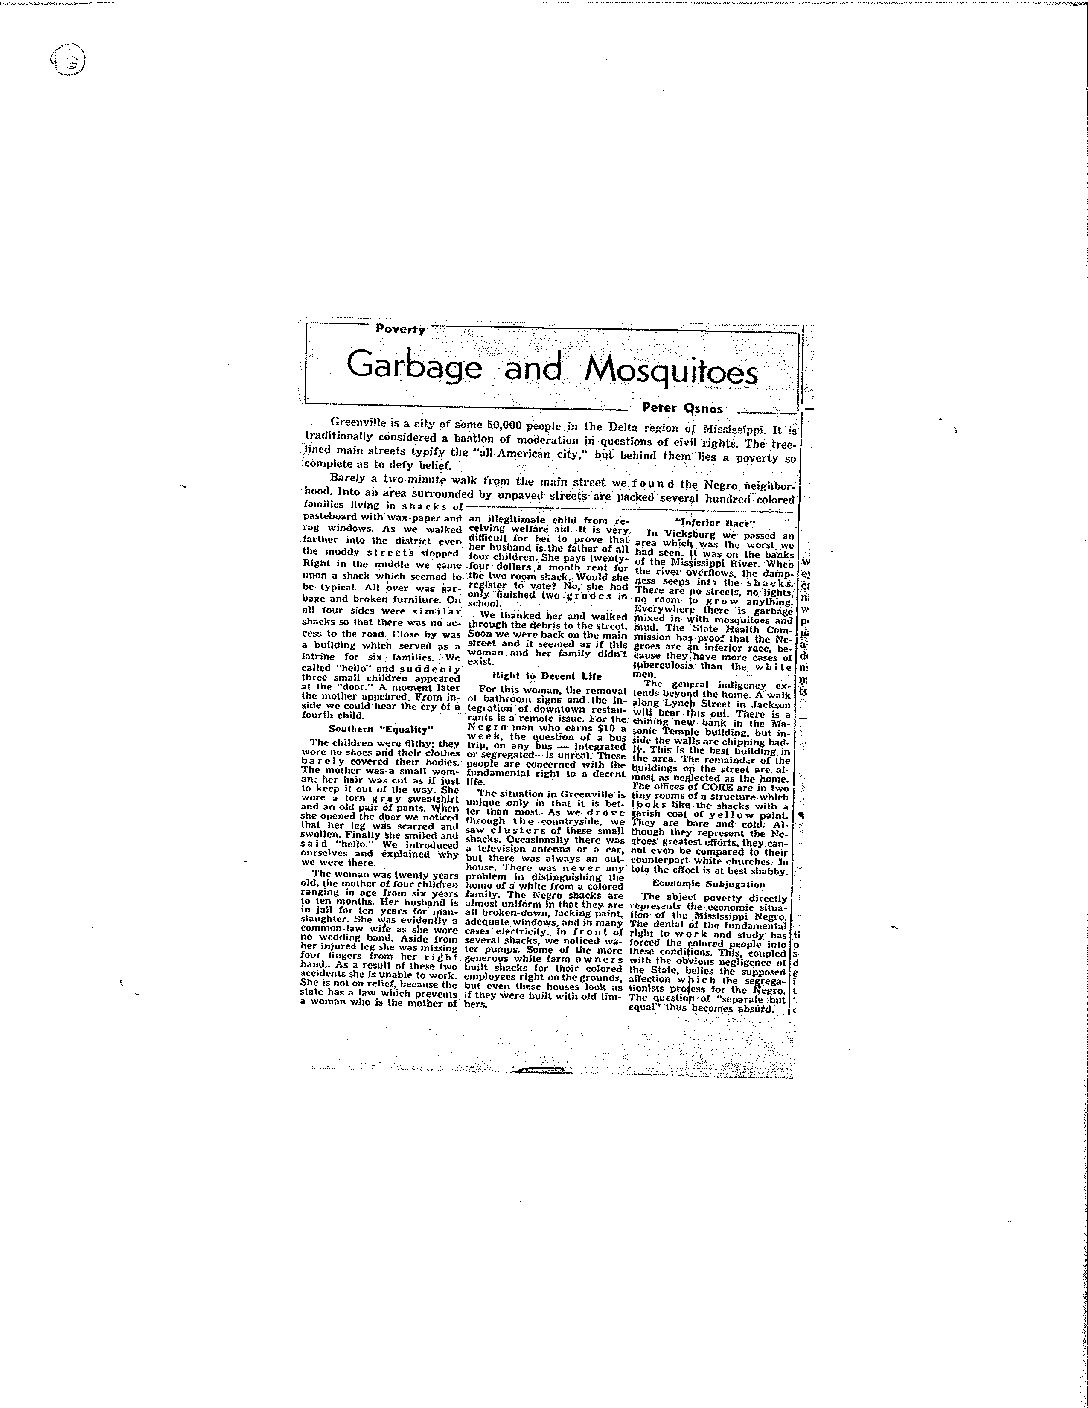 First ever byline in The Justice, 1962